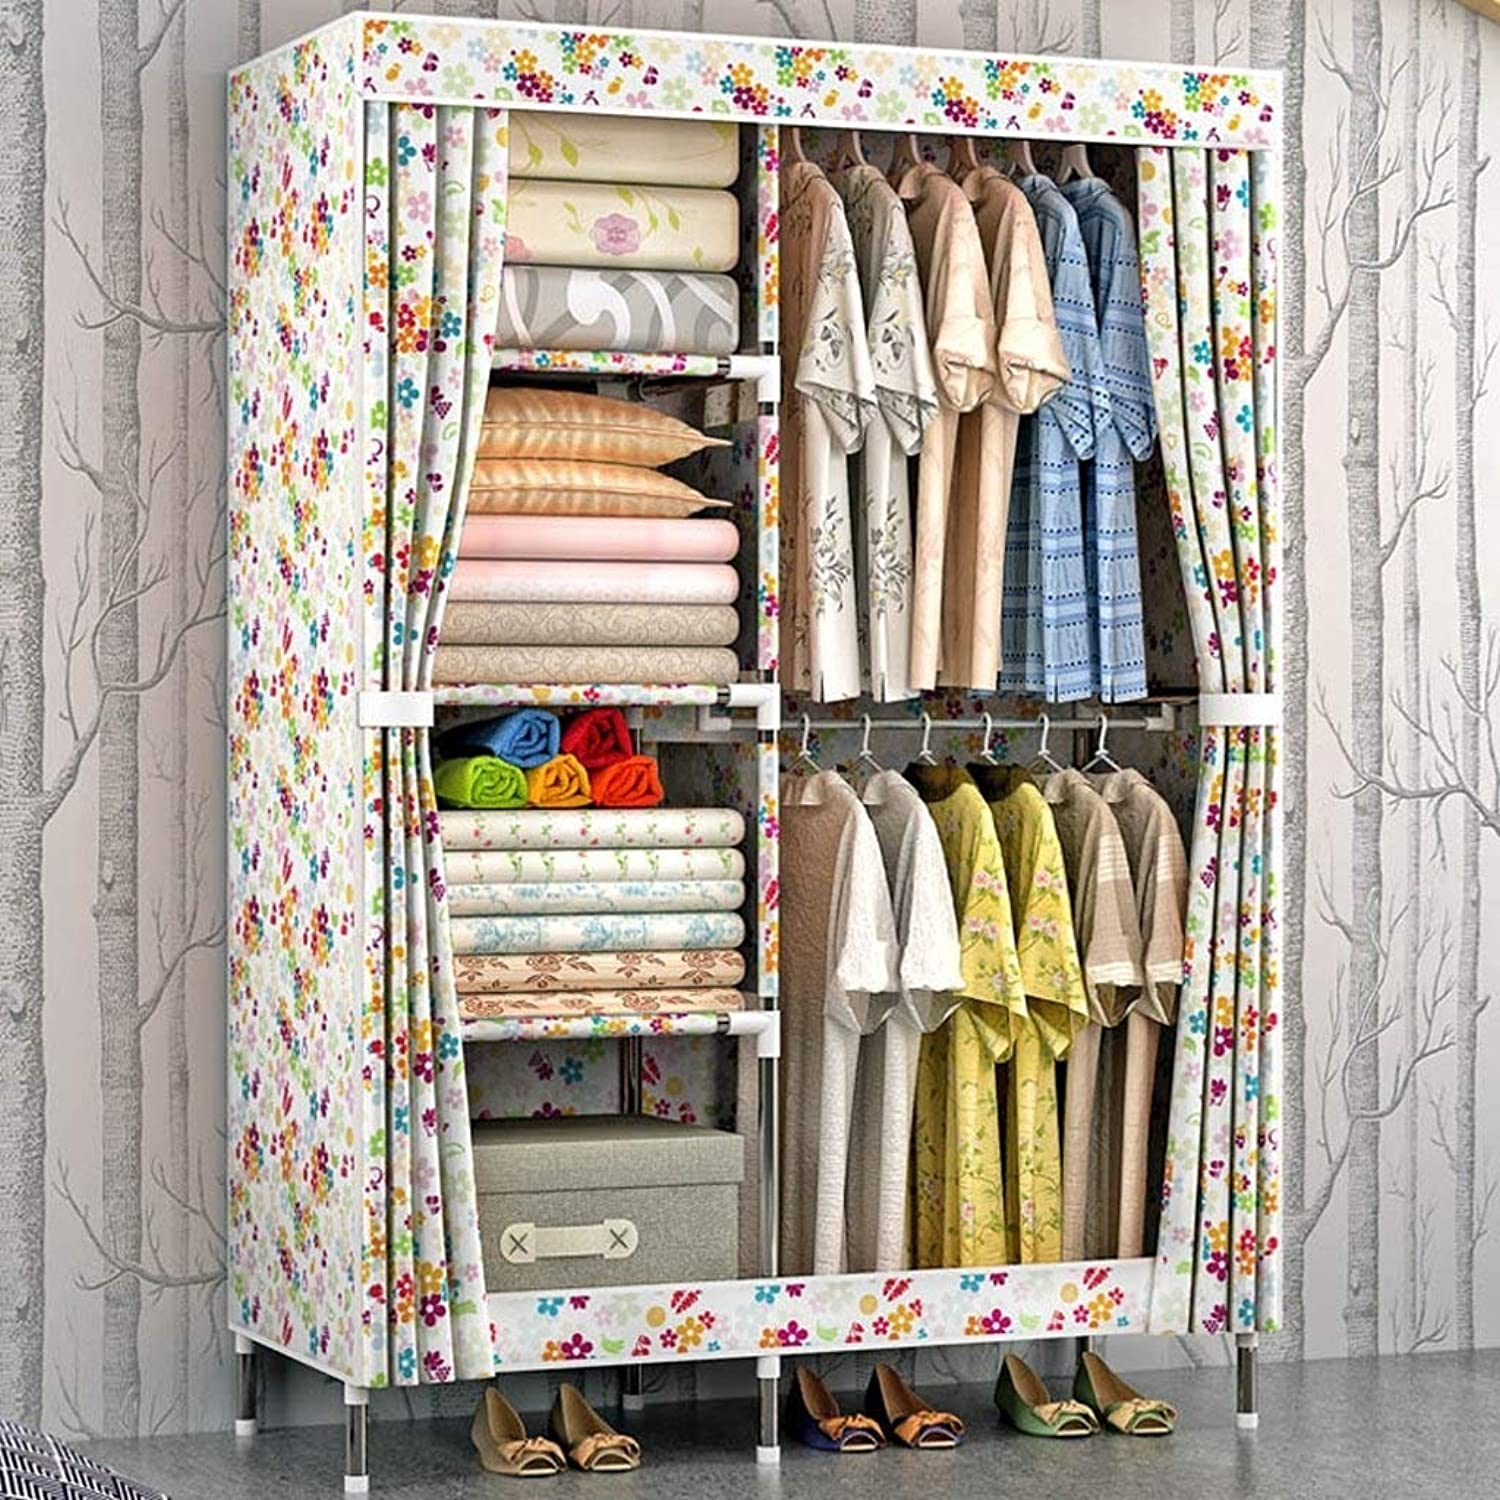 Yalztc-zyq16 Oxford Cloth Steel Pipe Thickening Simple Wardrobe Storage Cloths Wardrobes Assembly Folded Adult (color    7) (color   E)